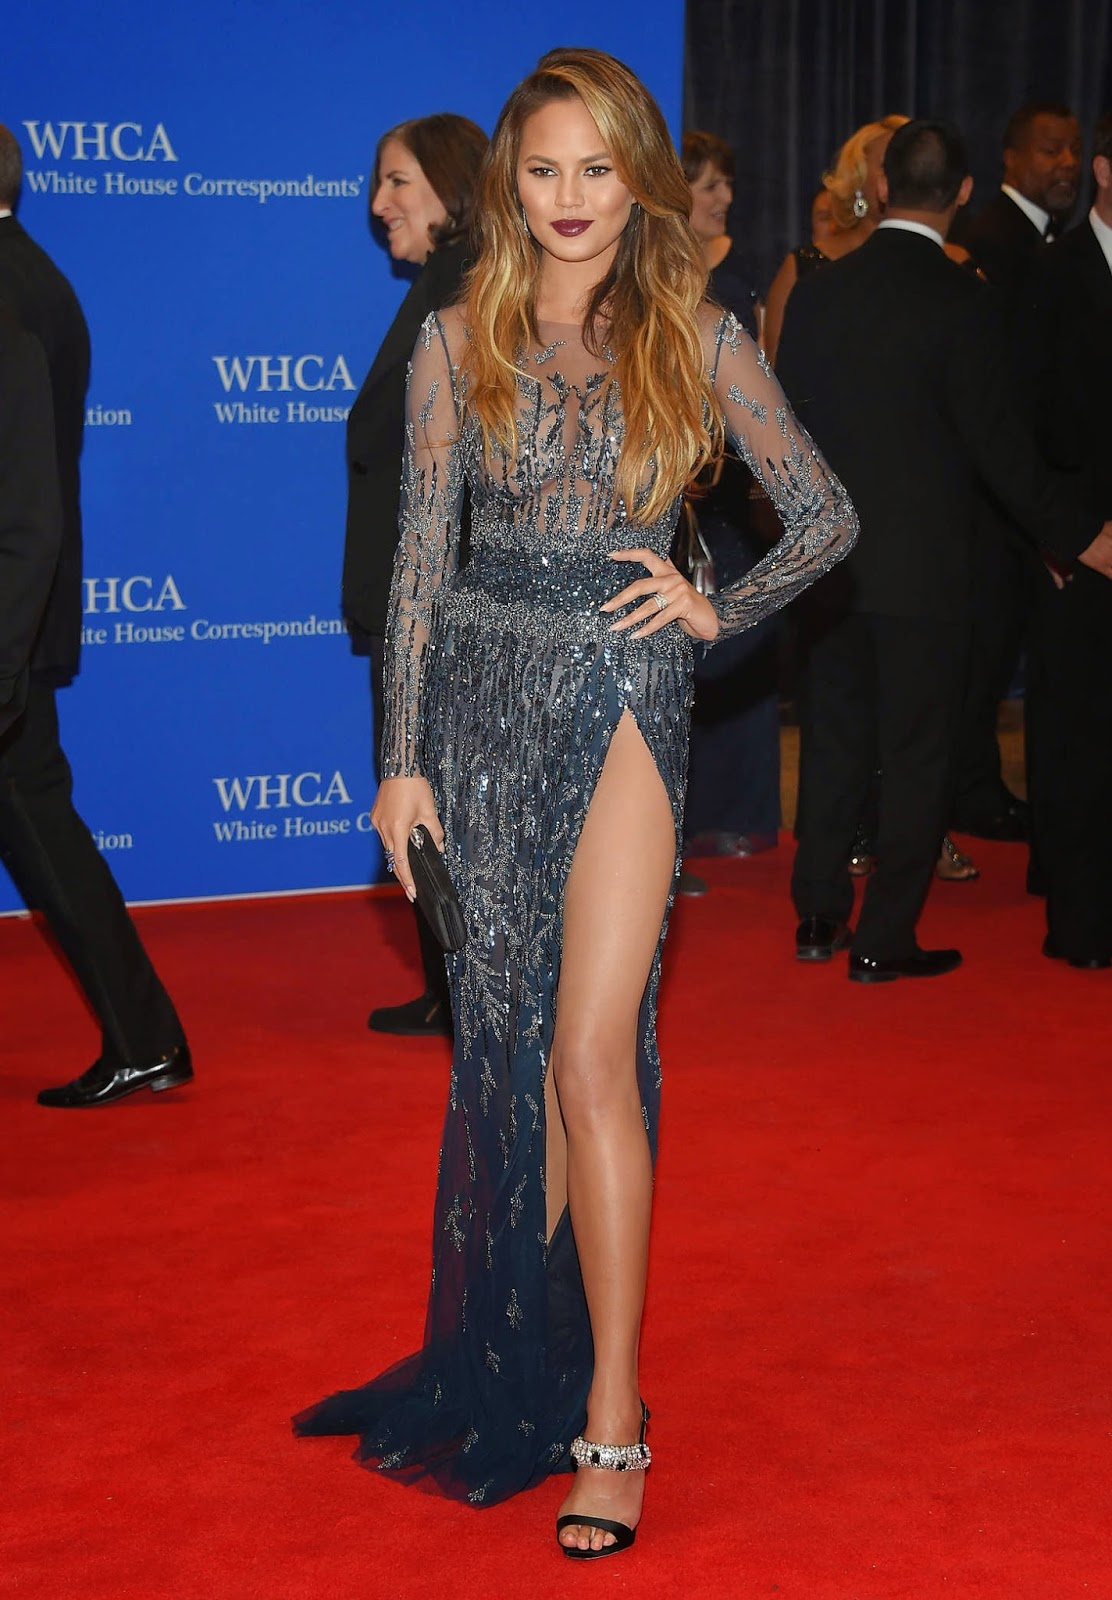 Chrissy Teigen Shows Off Legs For The 2015 White House